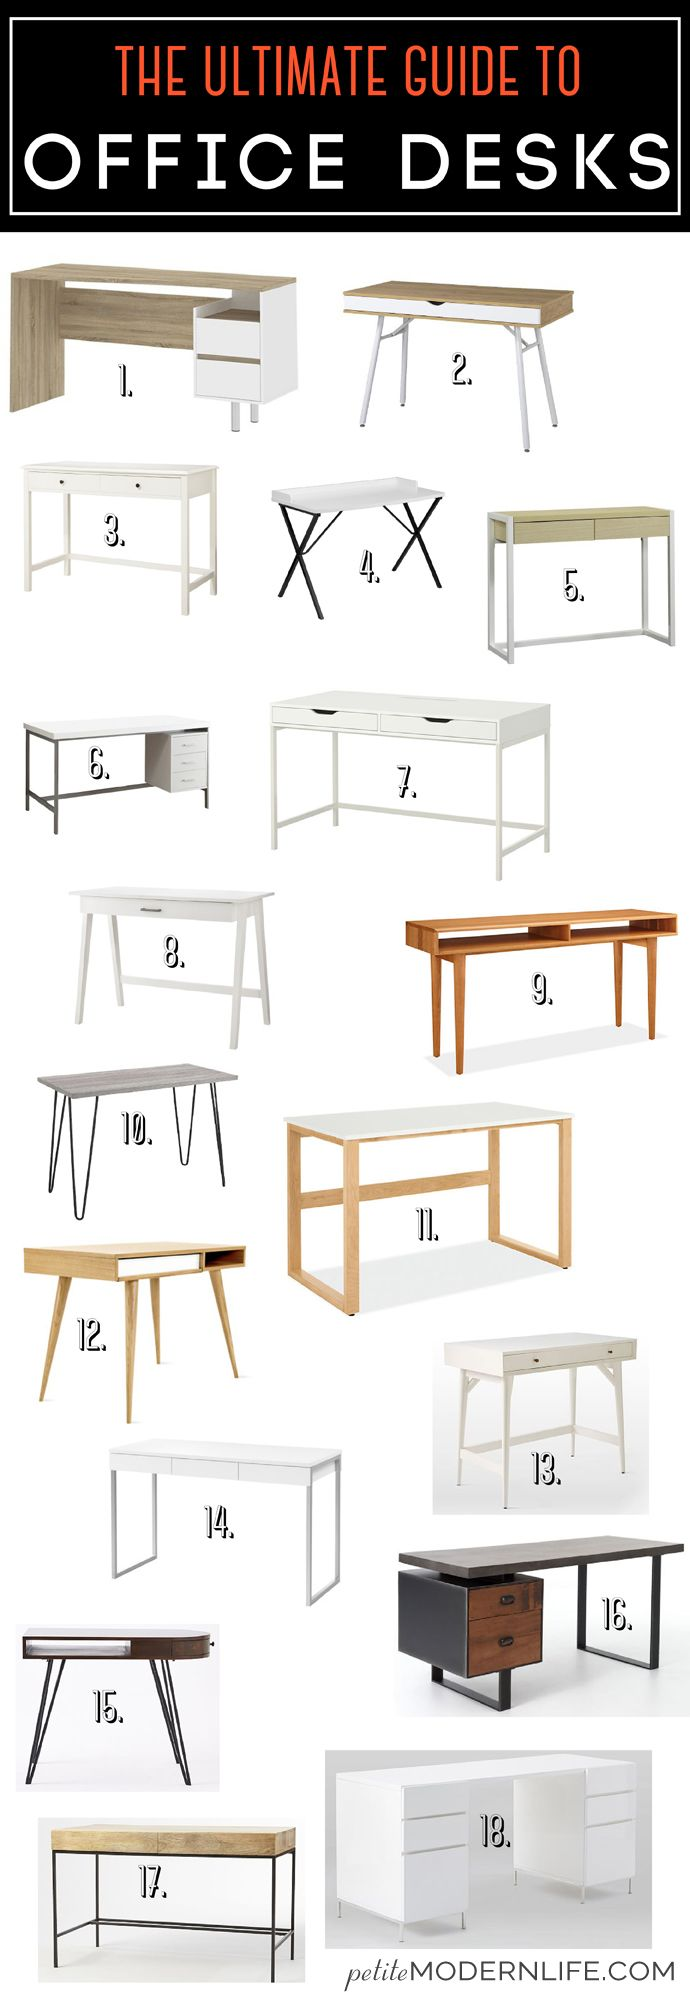 The Ultimate Guide to Office Desks